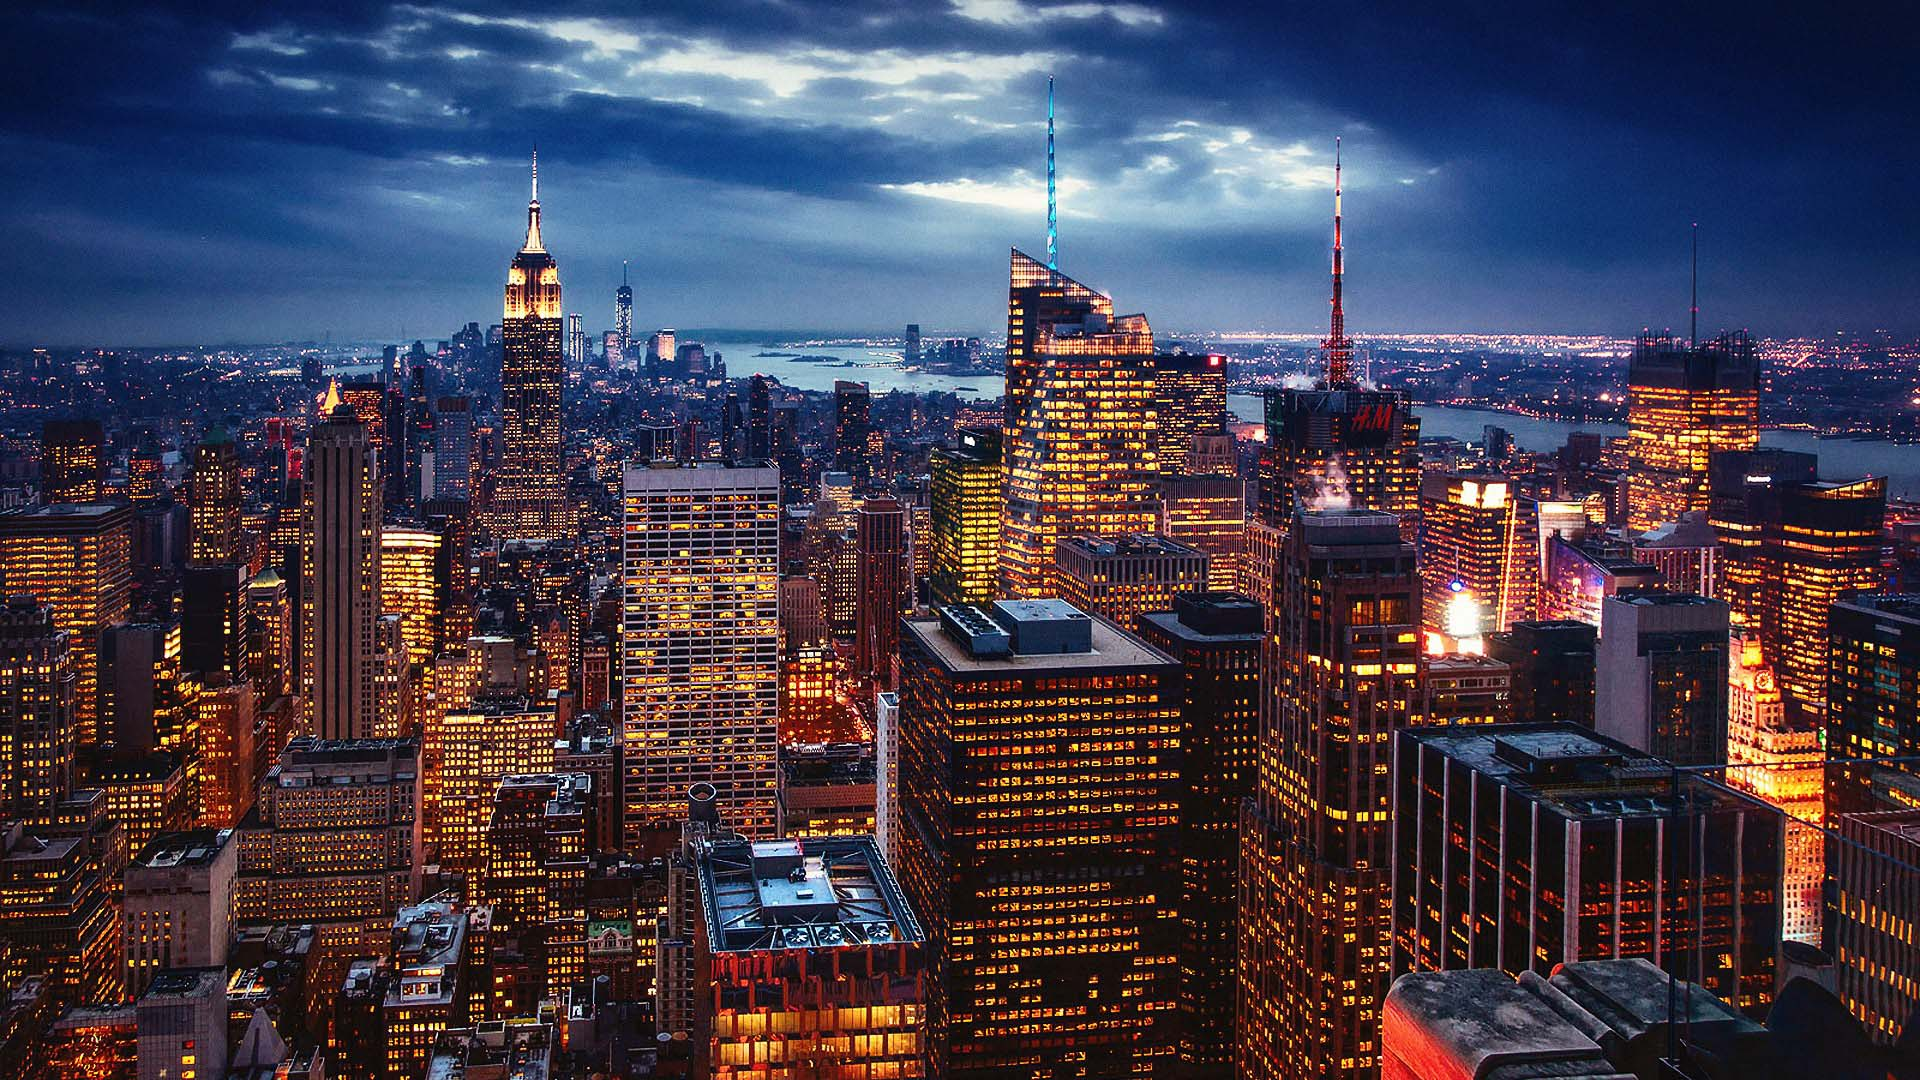 New York City At Night Wallpaper High Quality Conoce New York